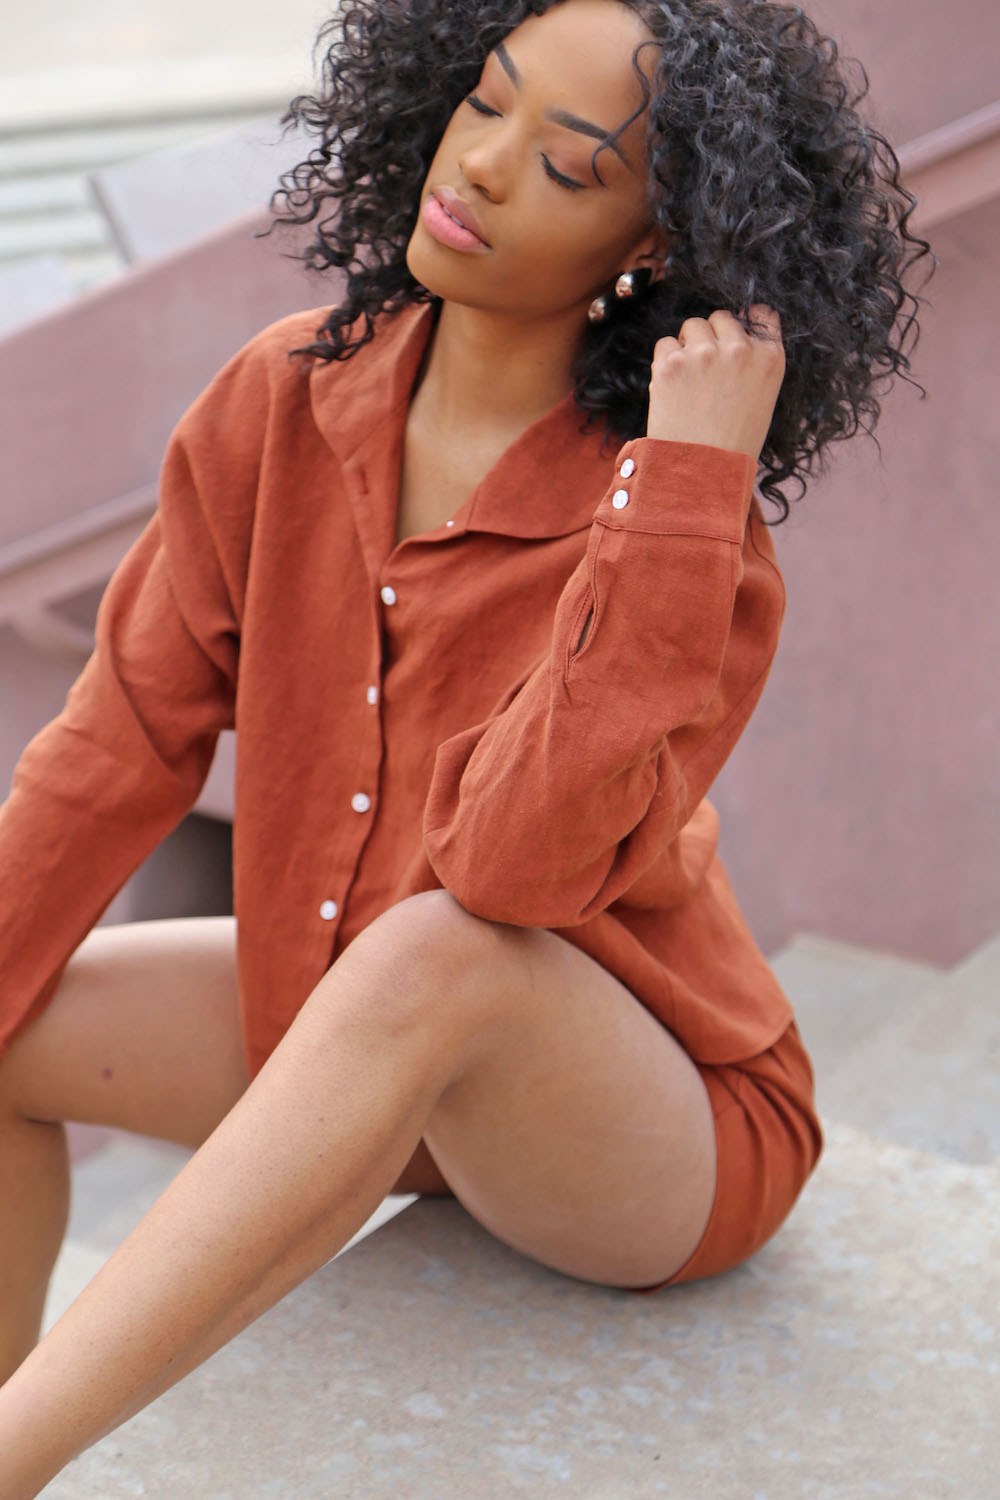 A Closer Look: Short Shorts & Collared Button-Up Top